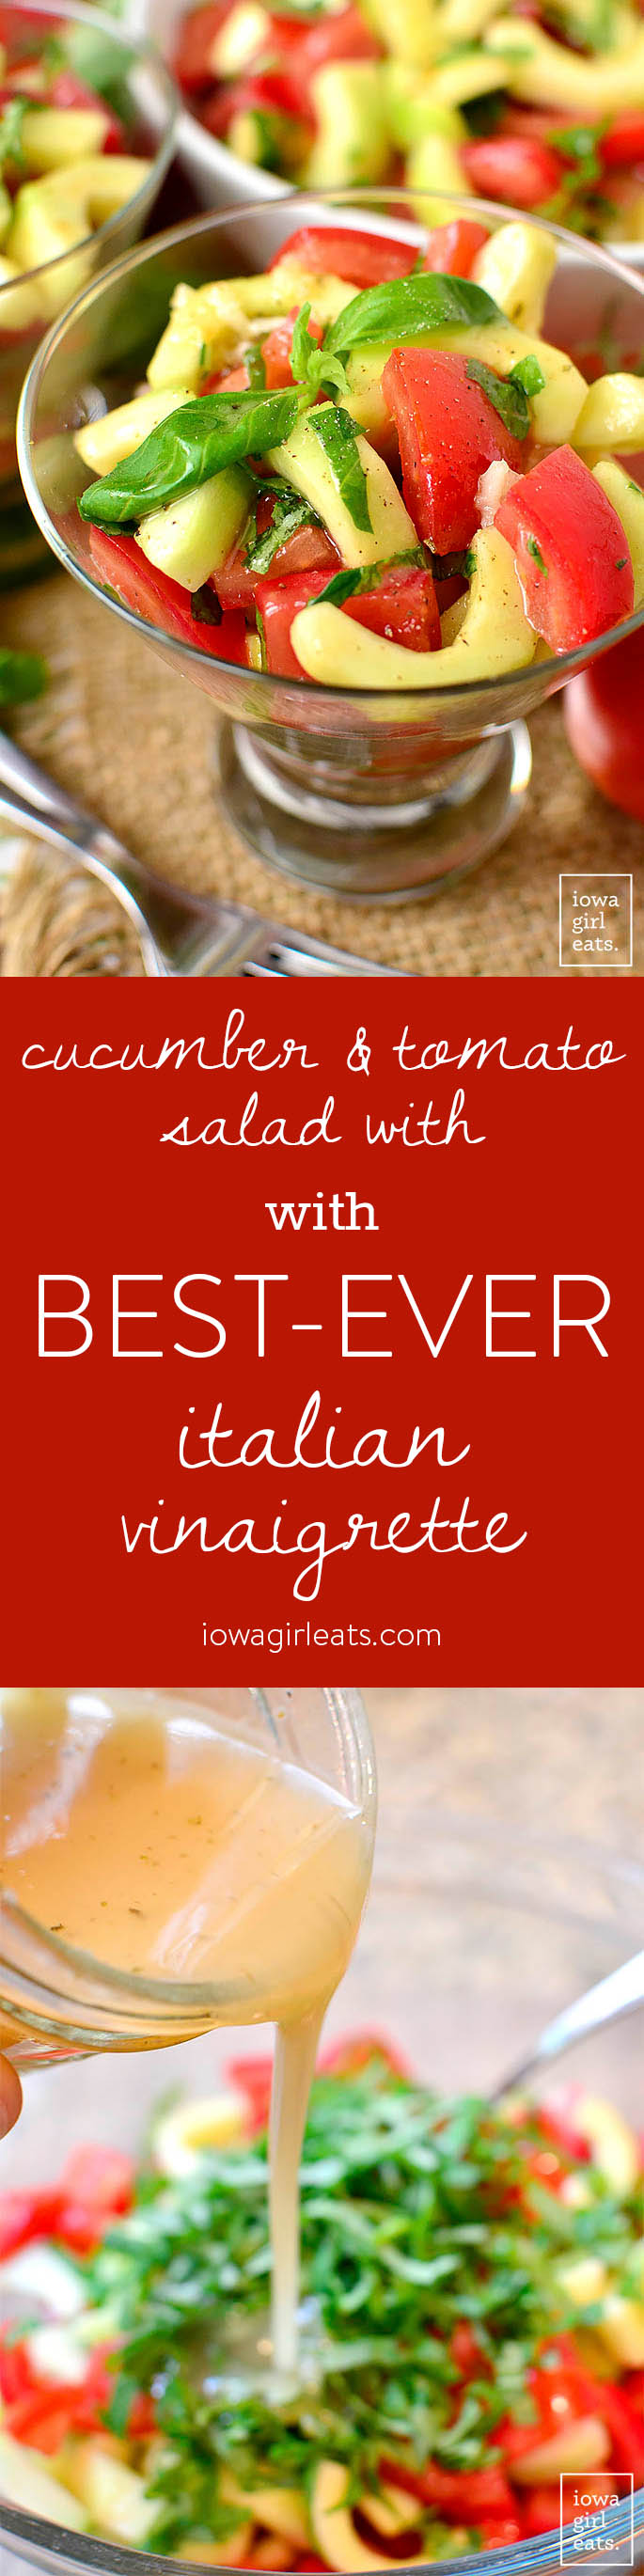 Cucumber and Tomato Salad with BEST EVER Italian Vinaigrette | iowagirleats.com